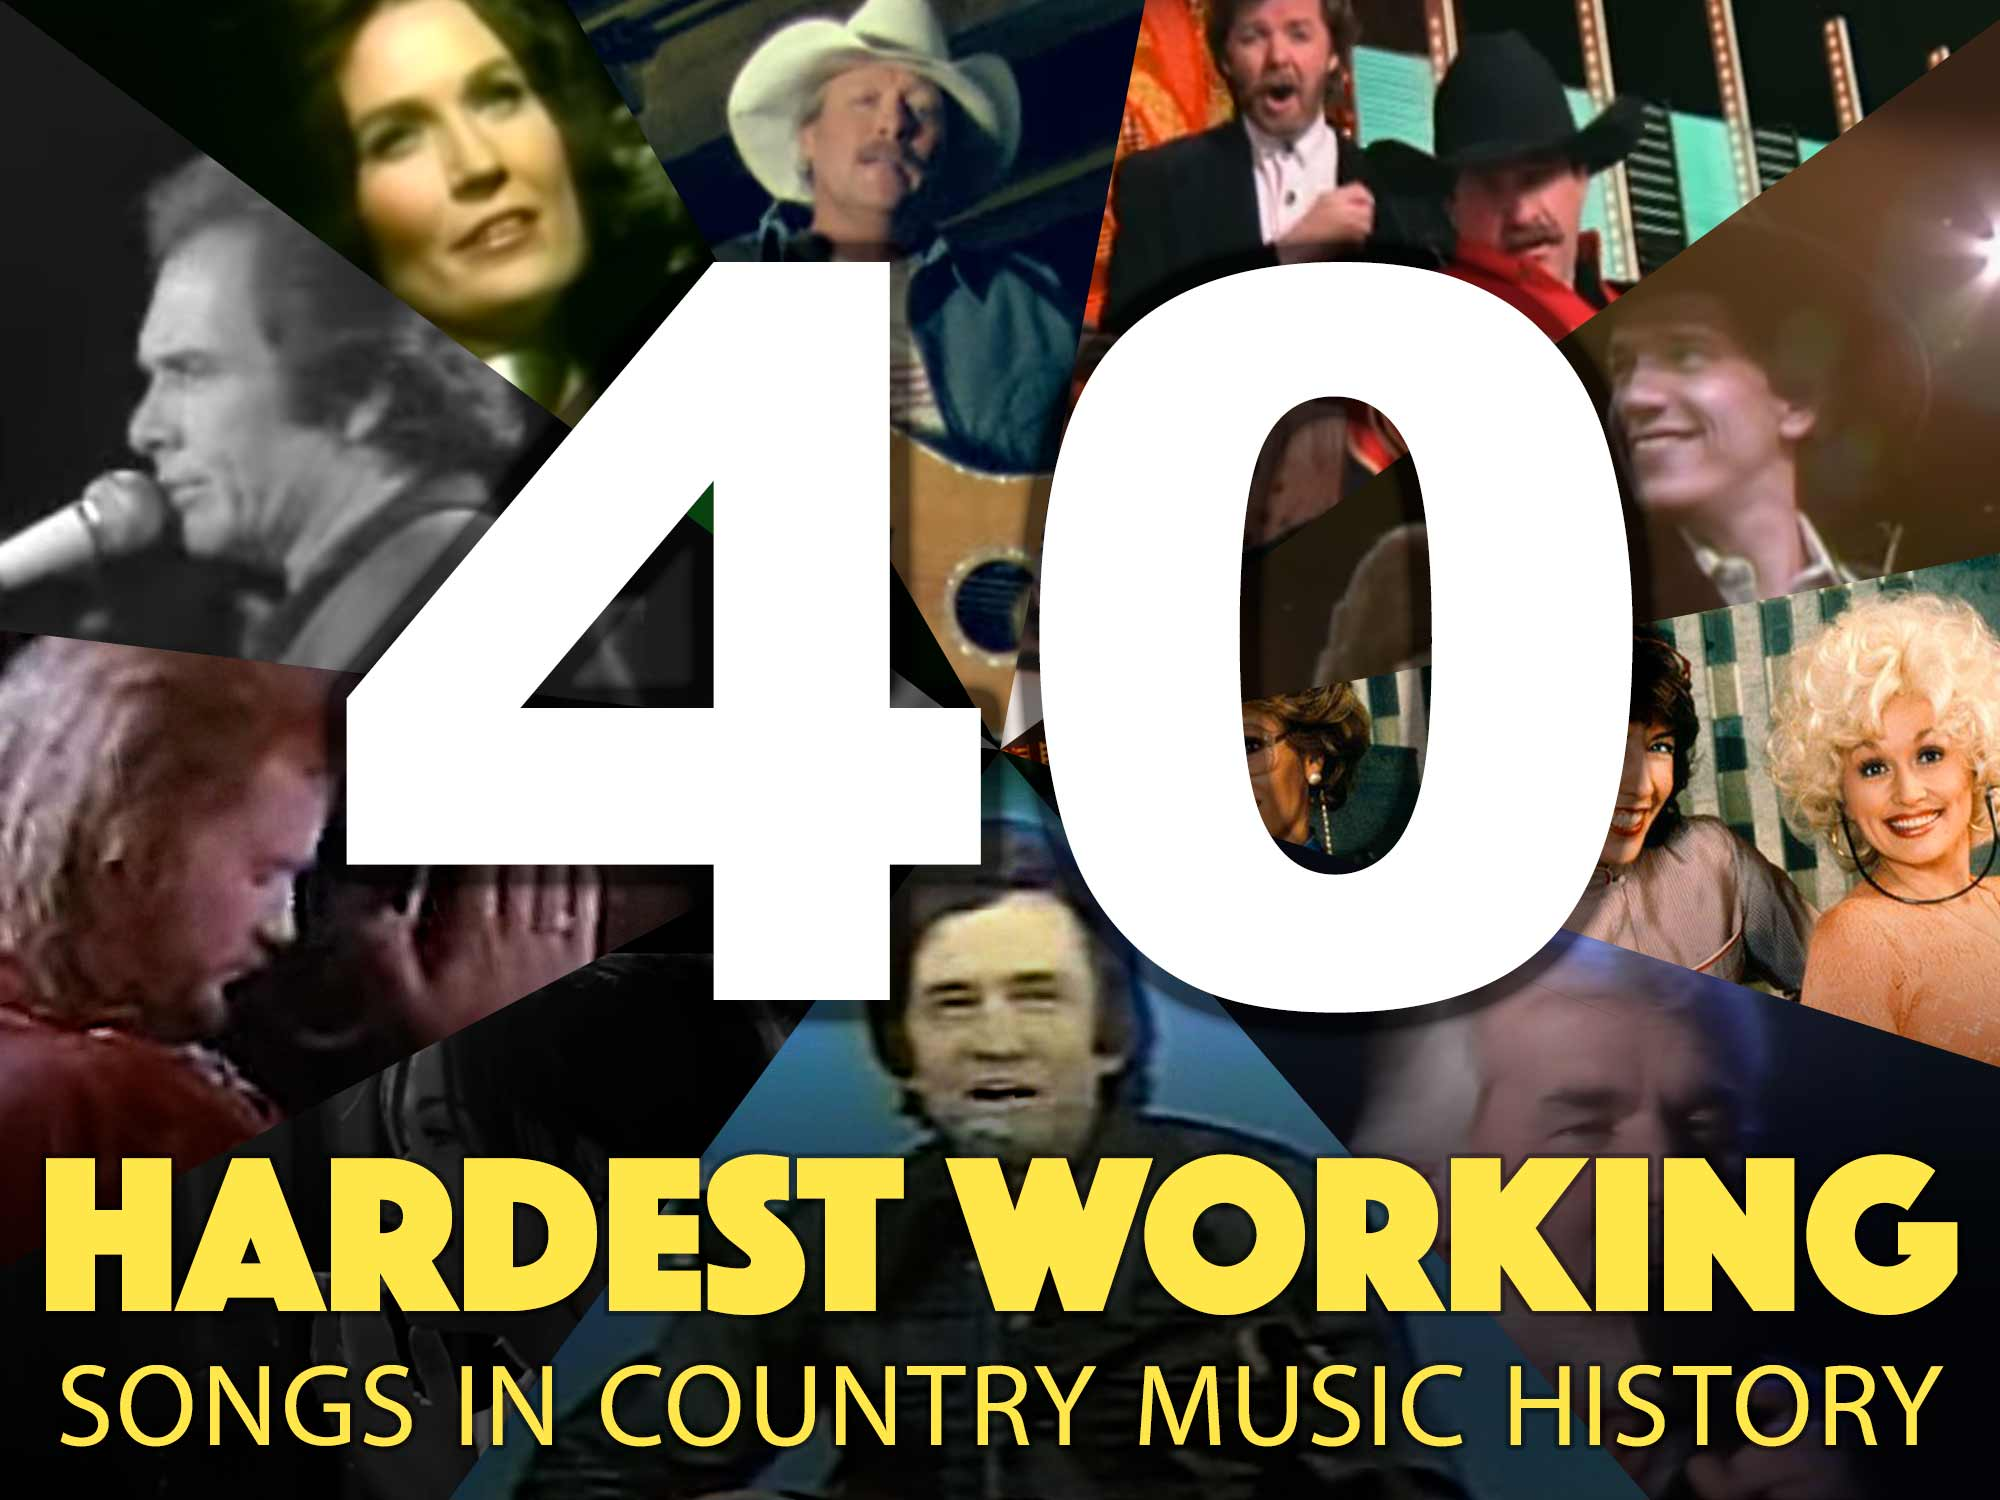 In Honor of Labor Day, We've Got the 40 Hardest Working Songs in Country Music